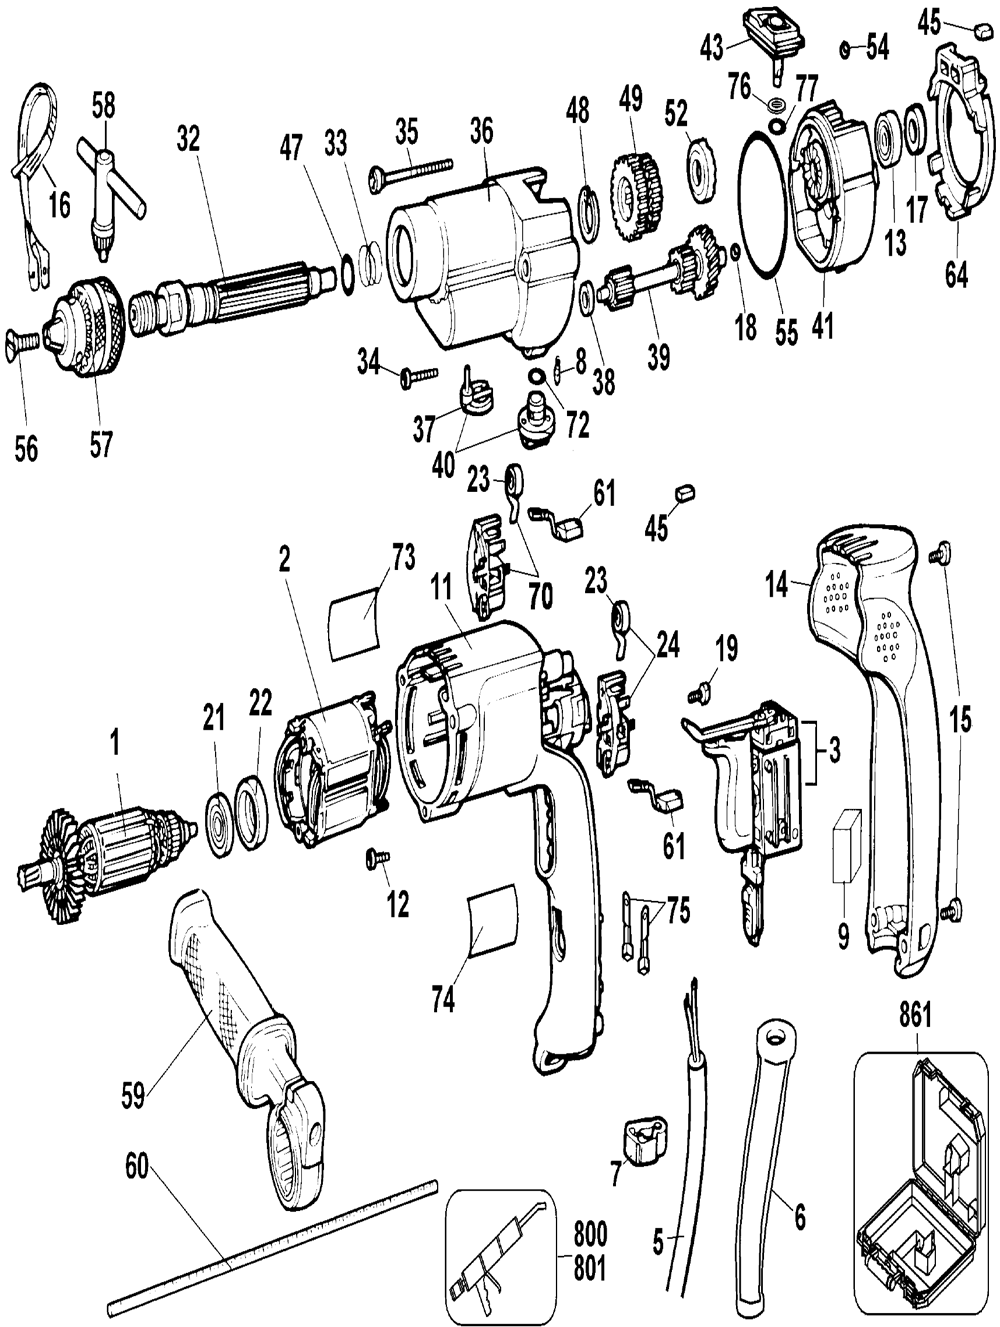 medium resolution of dw505 t2 dewalt pb buy dewalt dw505 type 2 1 2 inch 7 dewalt hammer drill wiring diagram